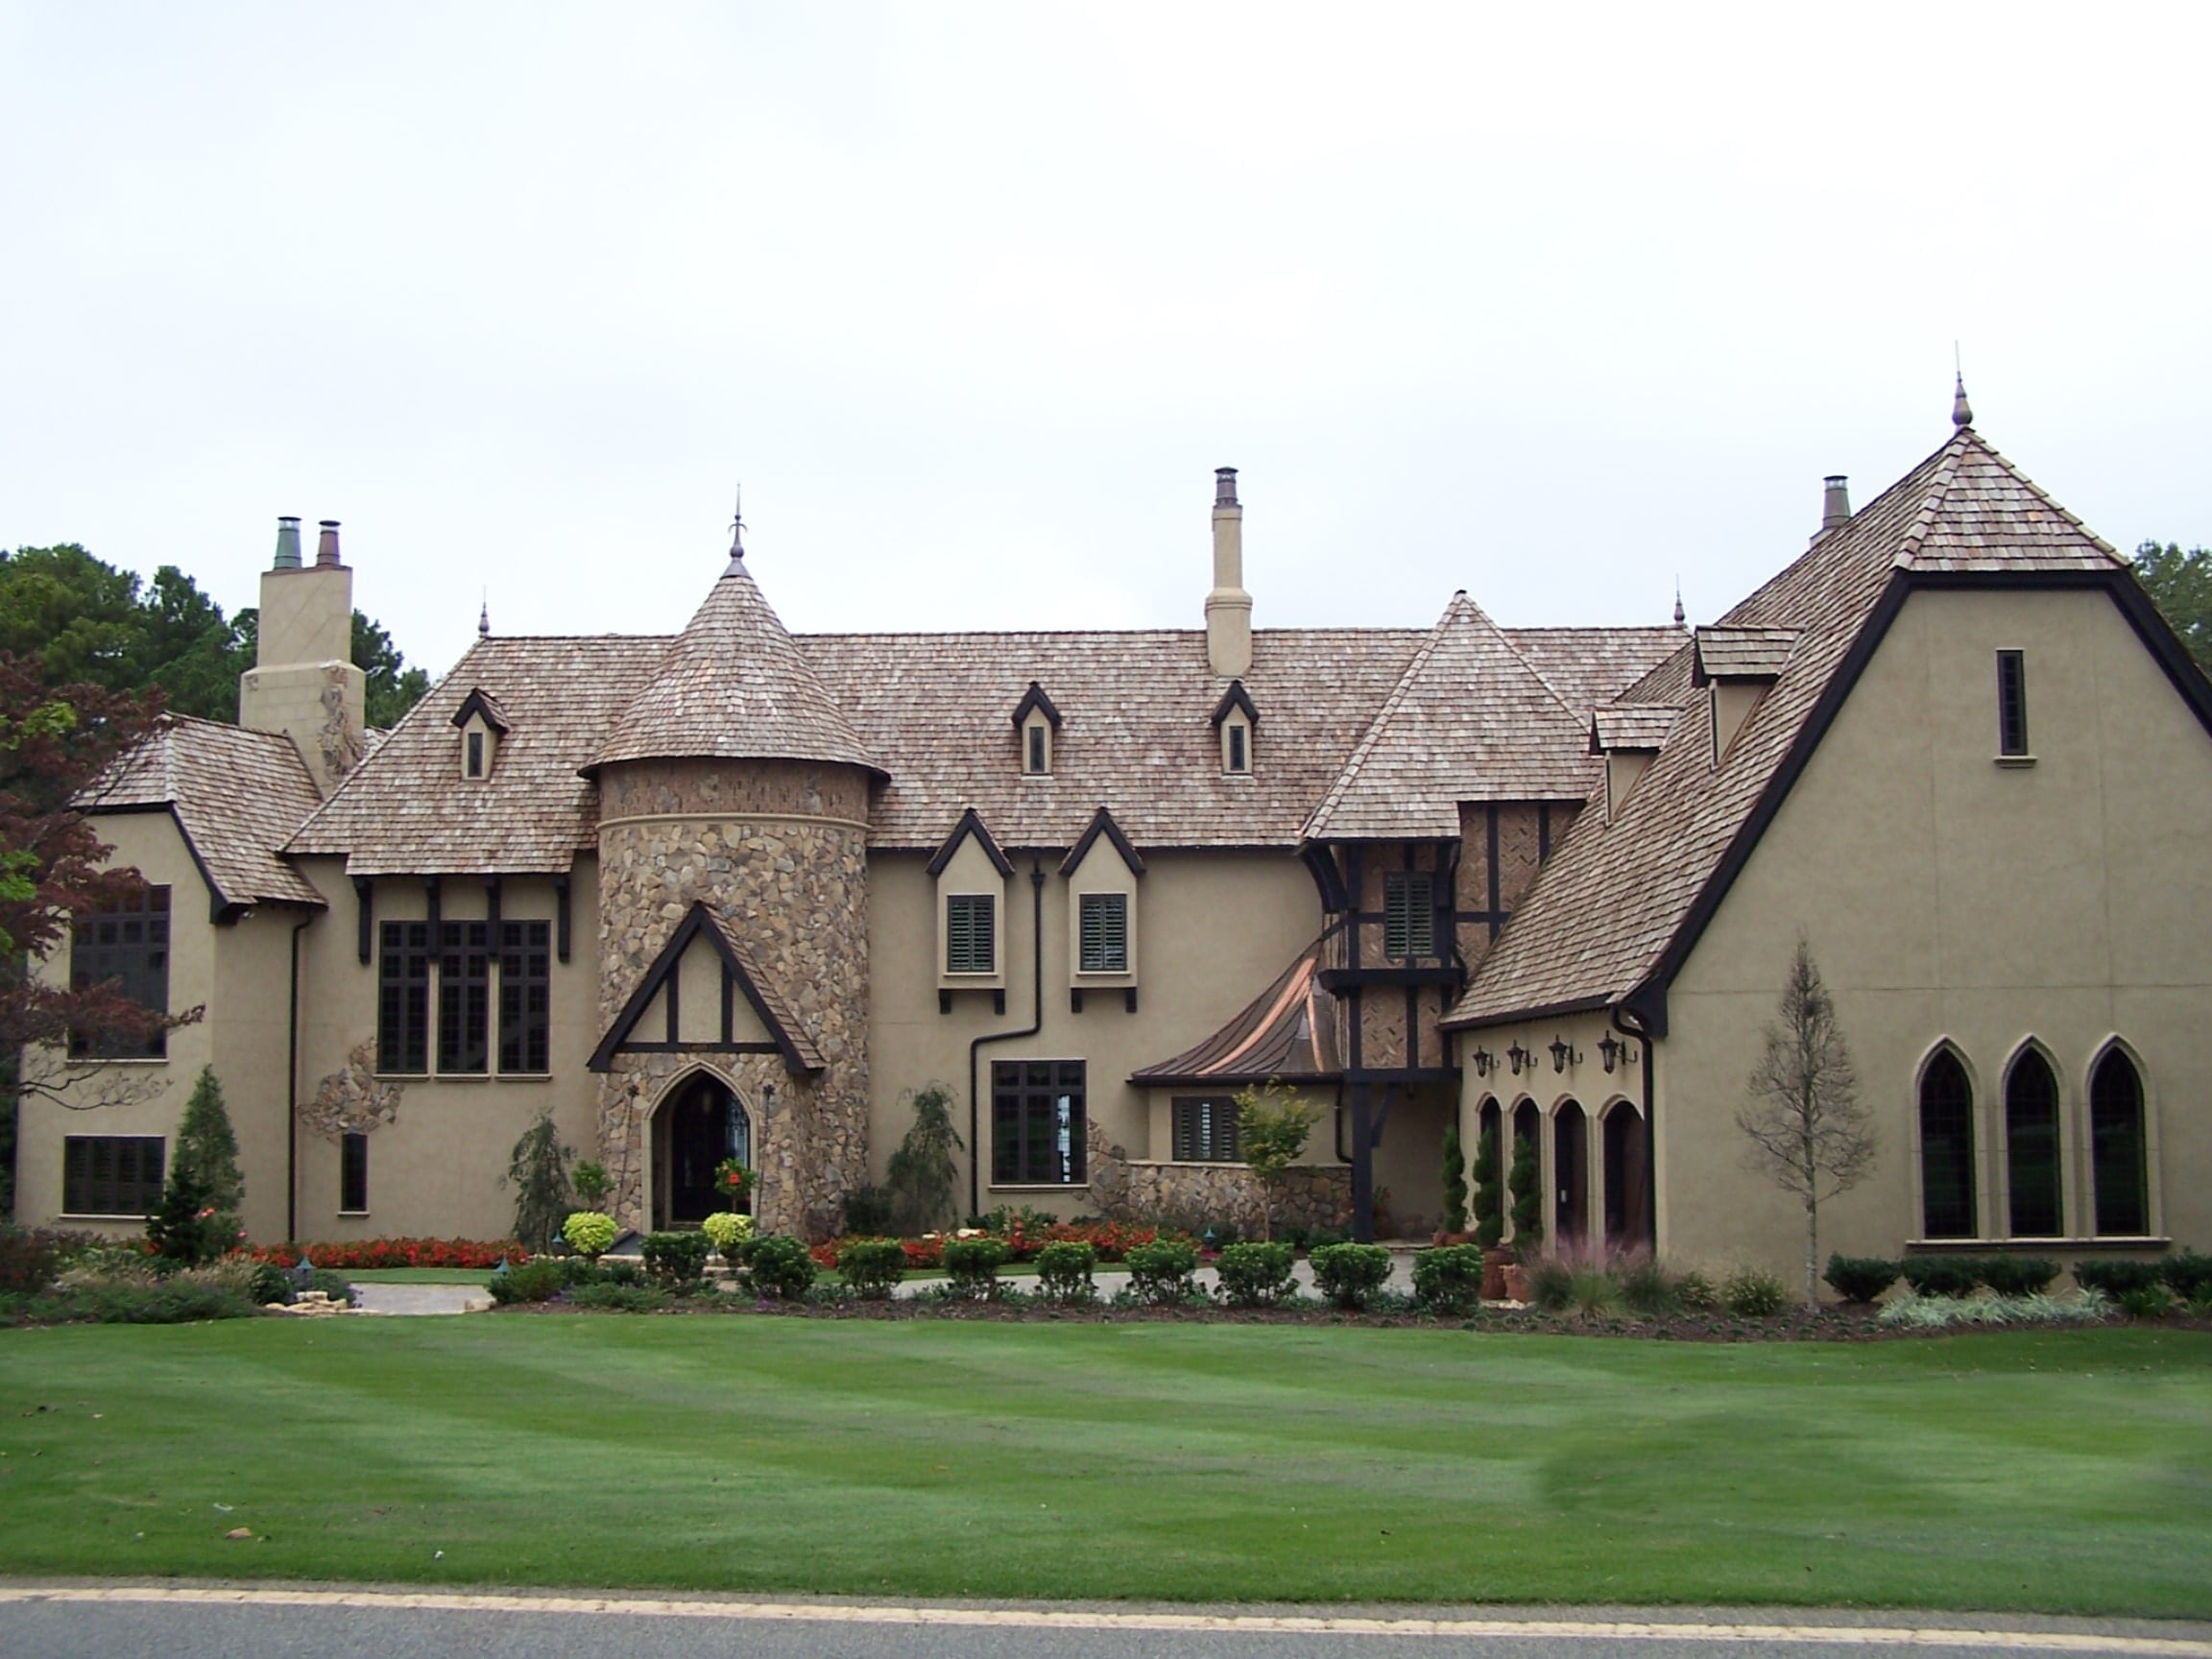 Beautiful Old World home with stucco and stone. Cedar shake roof adds to the old world charm.